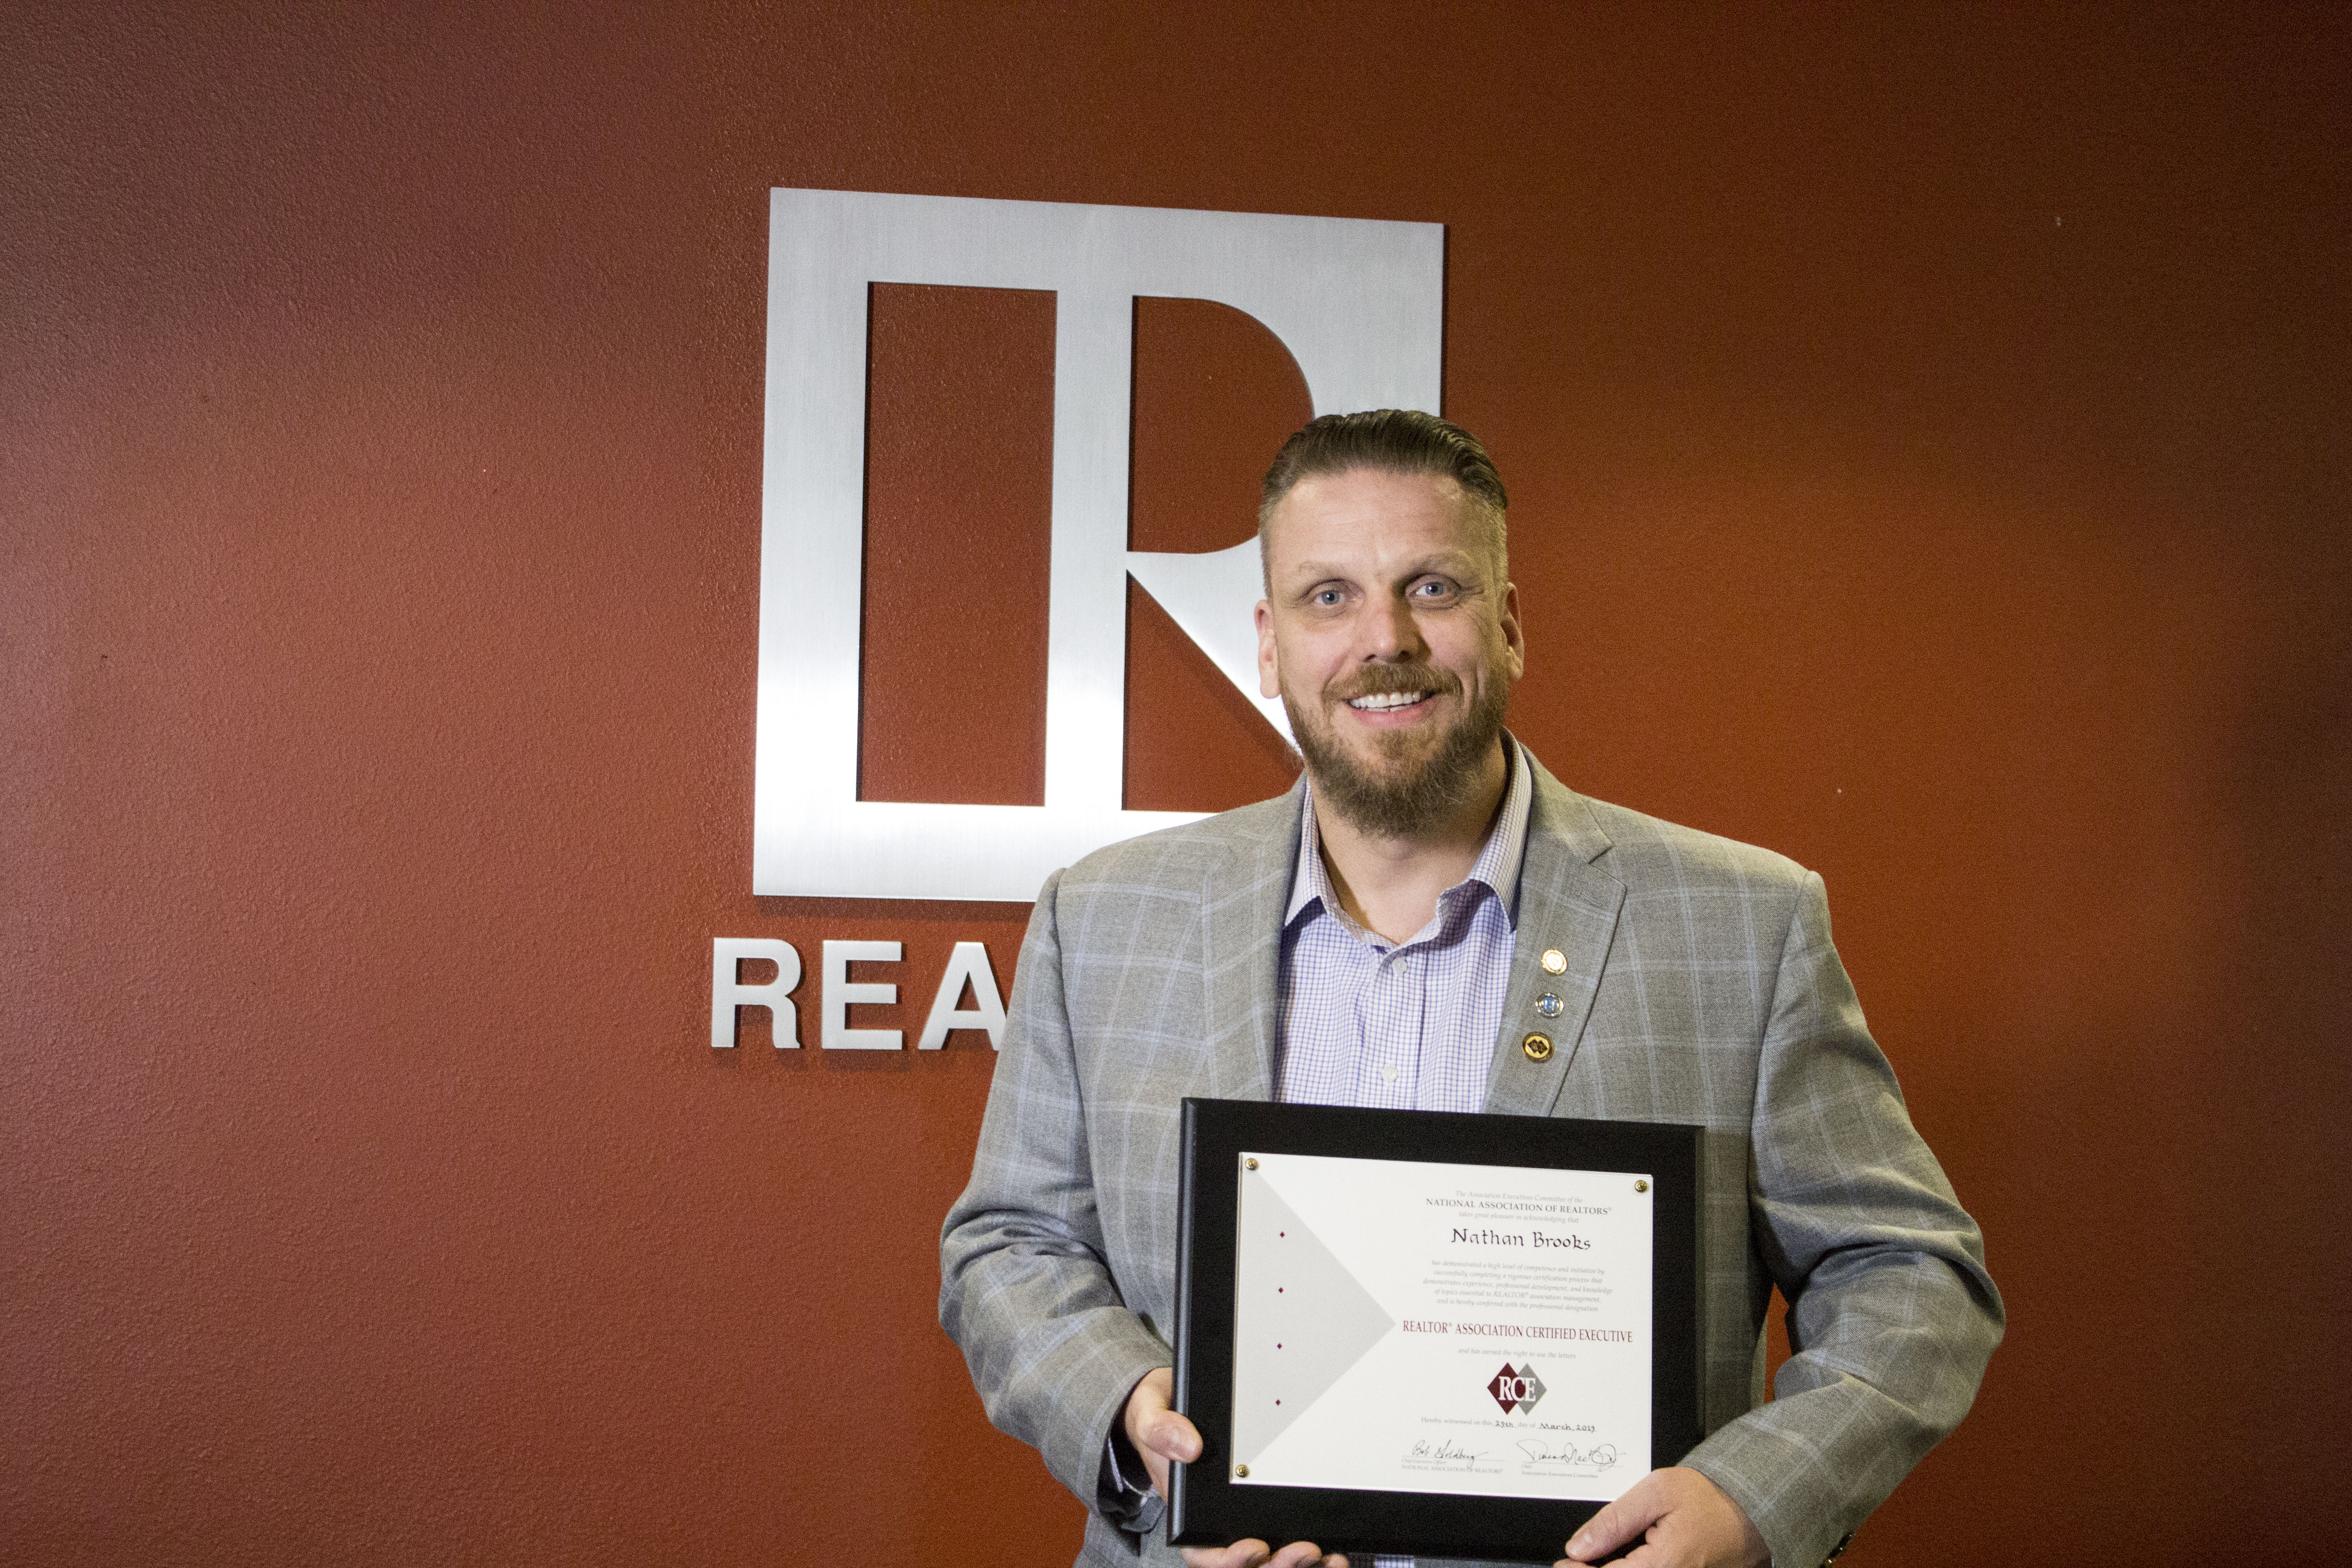 Nathan Brooks receives RCE Designation from NAR